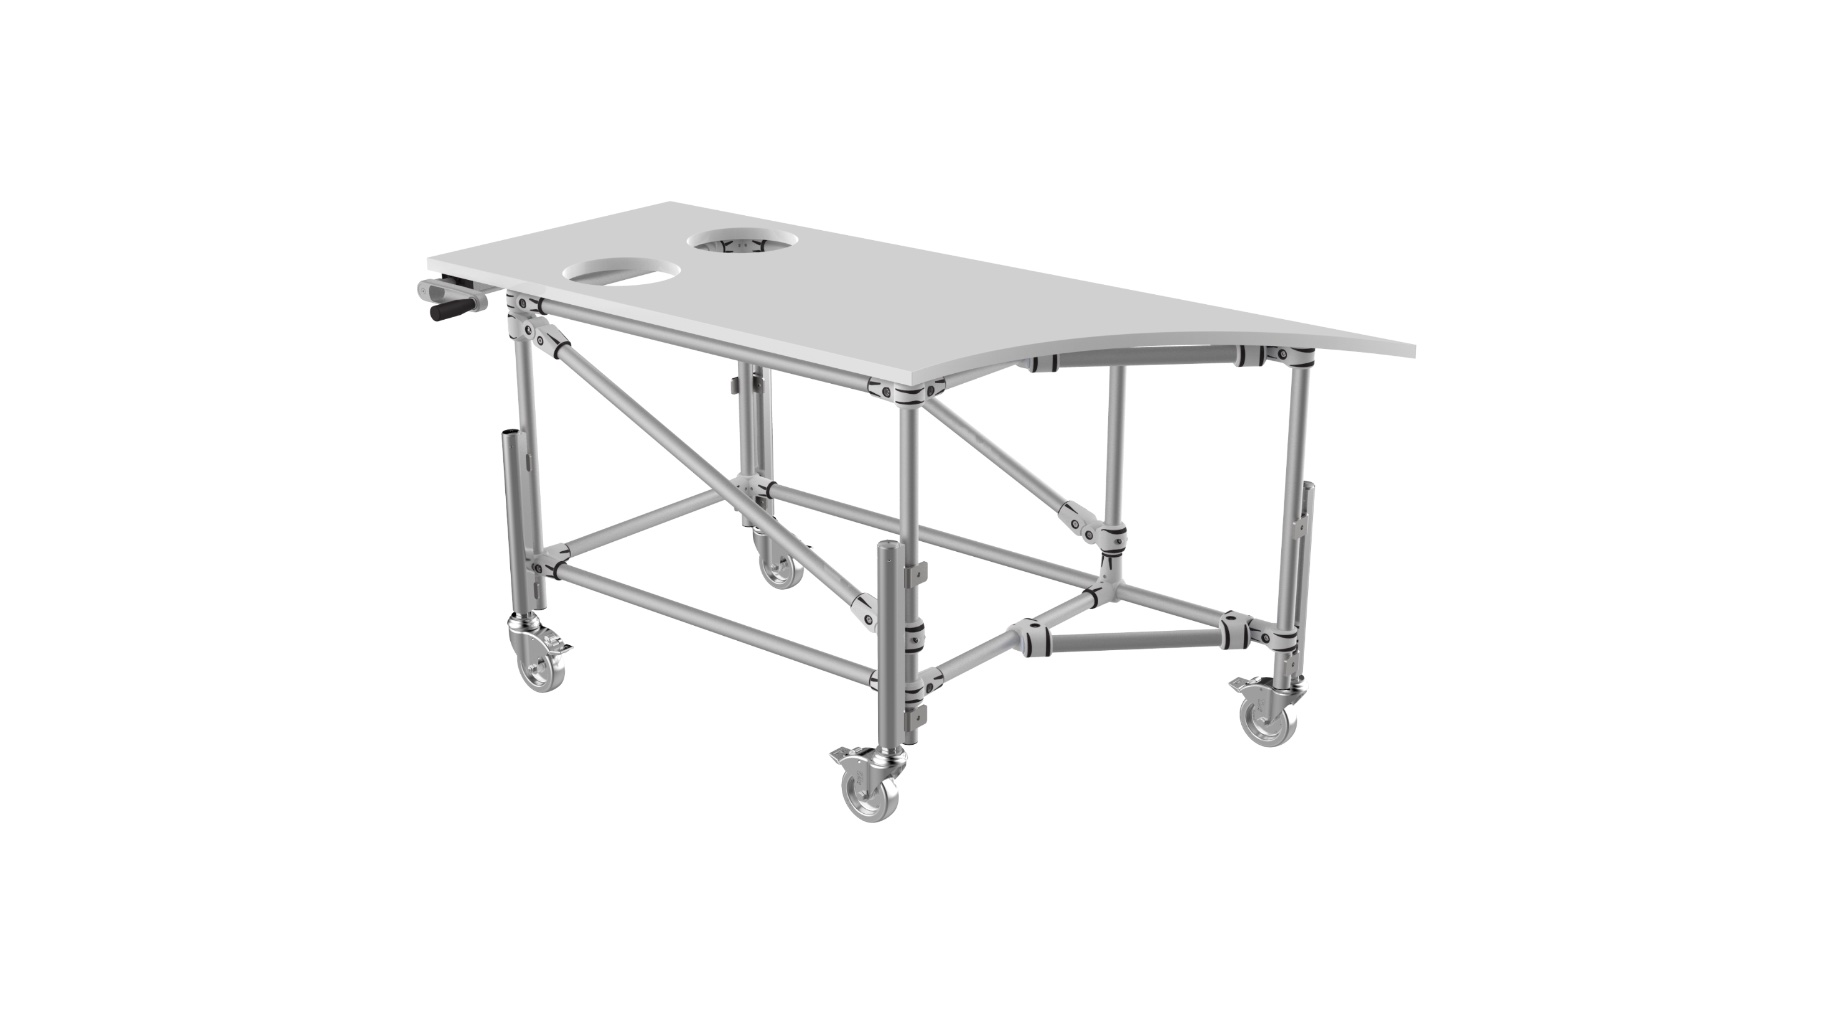 Food industry - Bespoke worktable with electric height adjustment and customized work table.